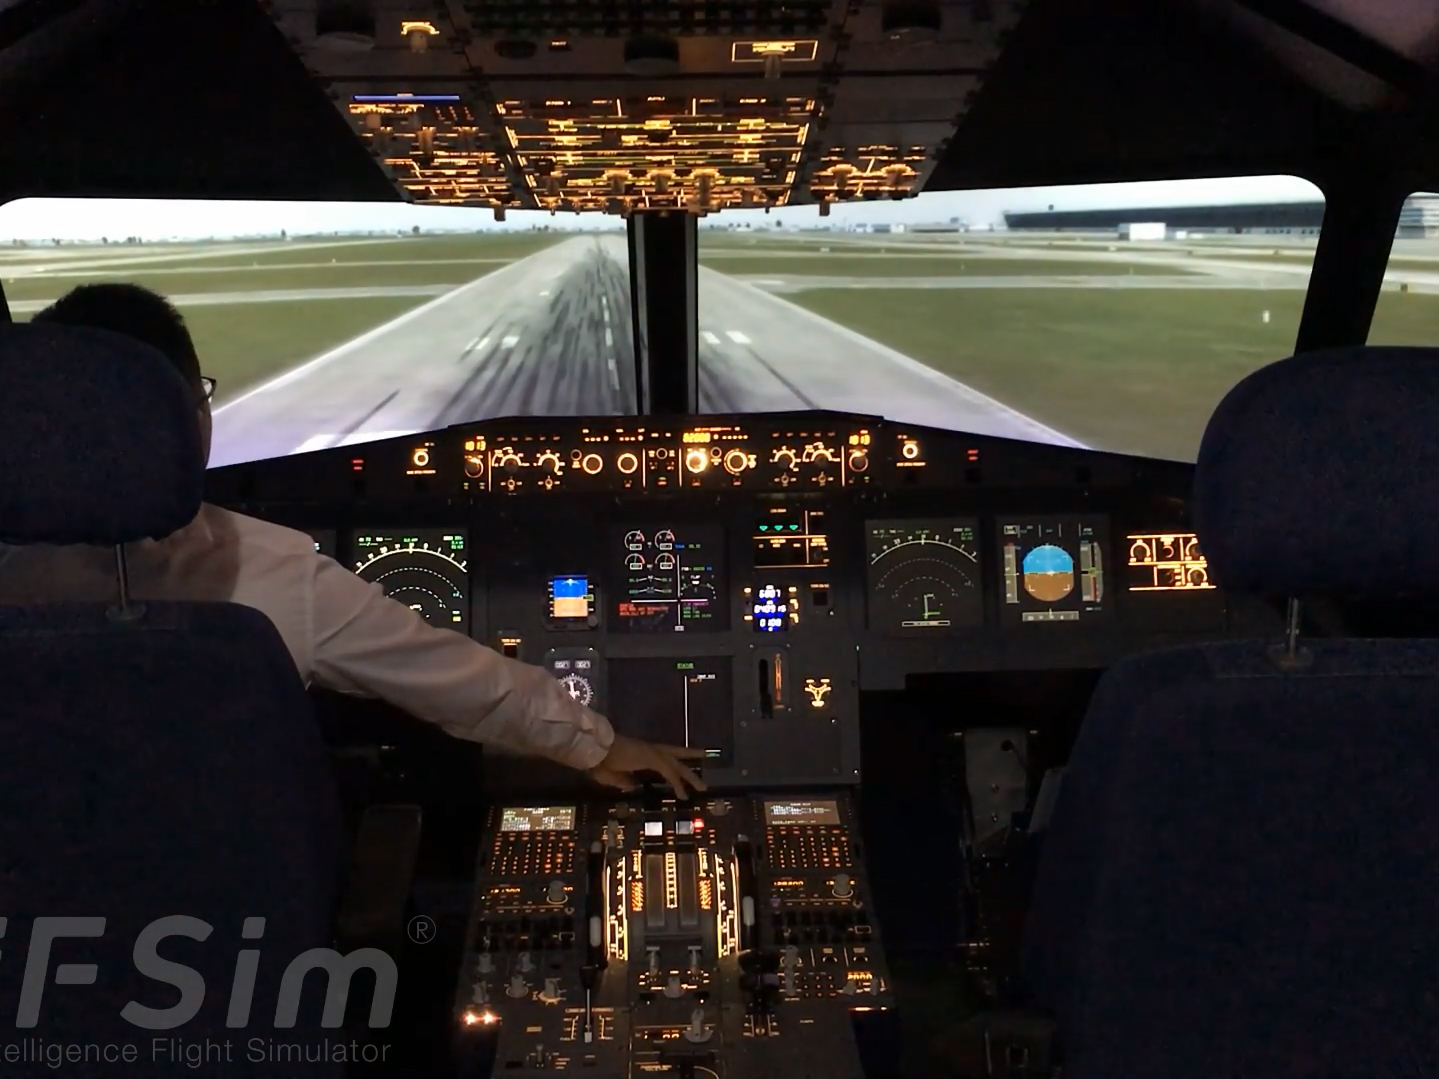 iFSim.A320 flight simulator take off at Shanghai Pudong Airport